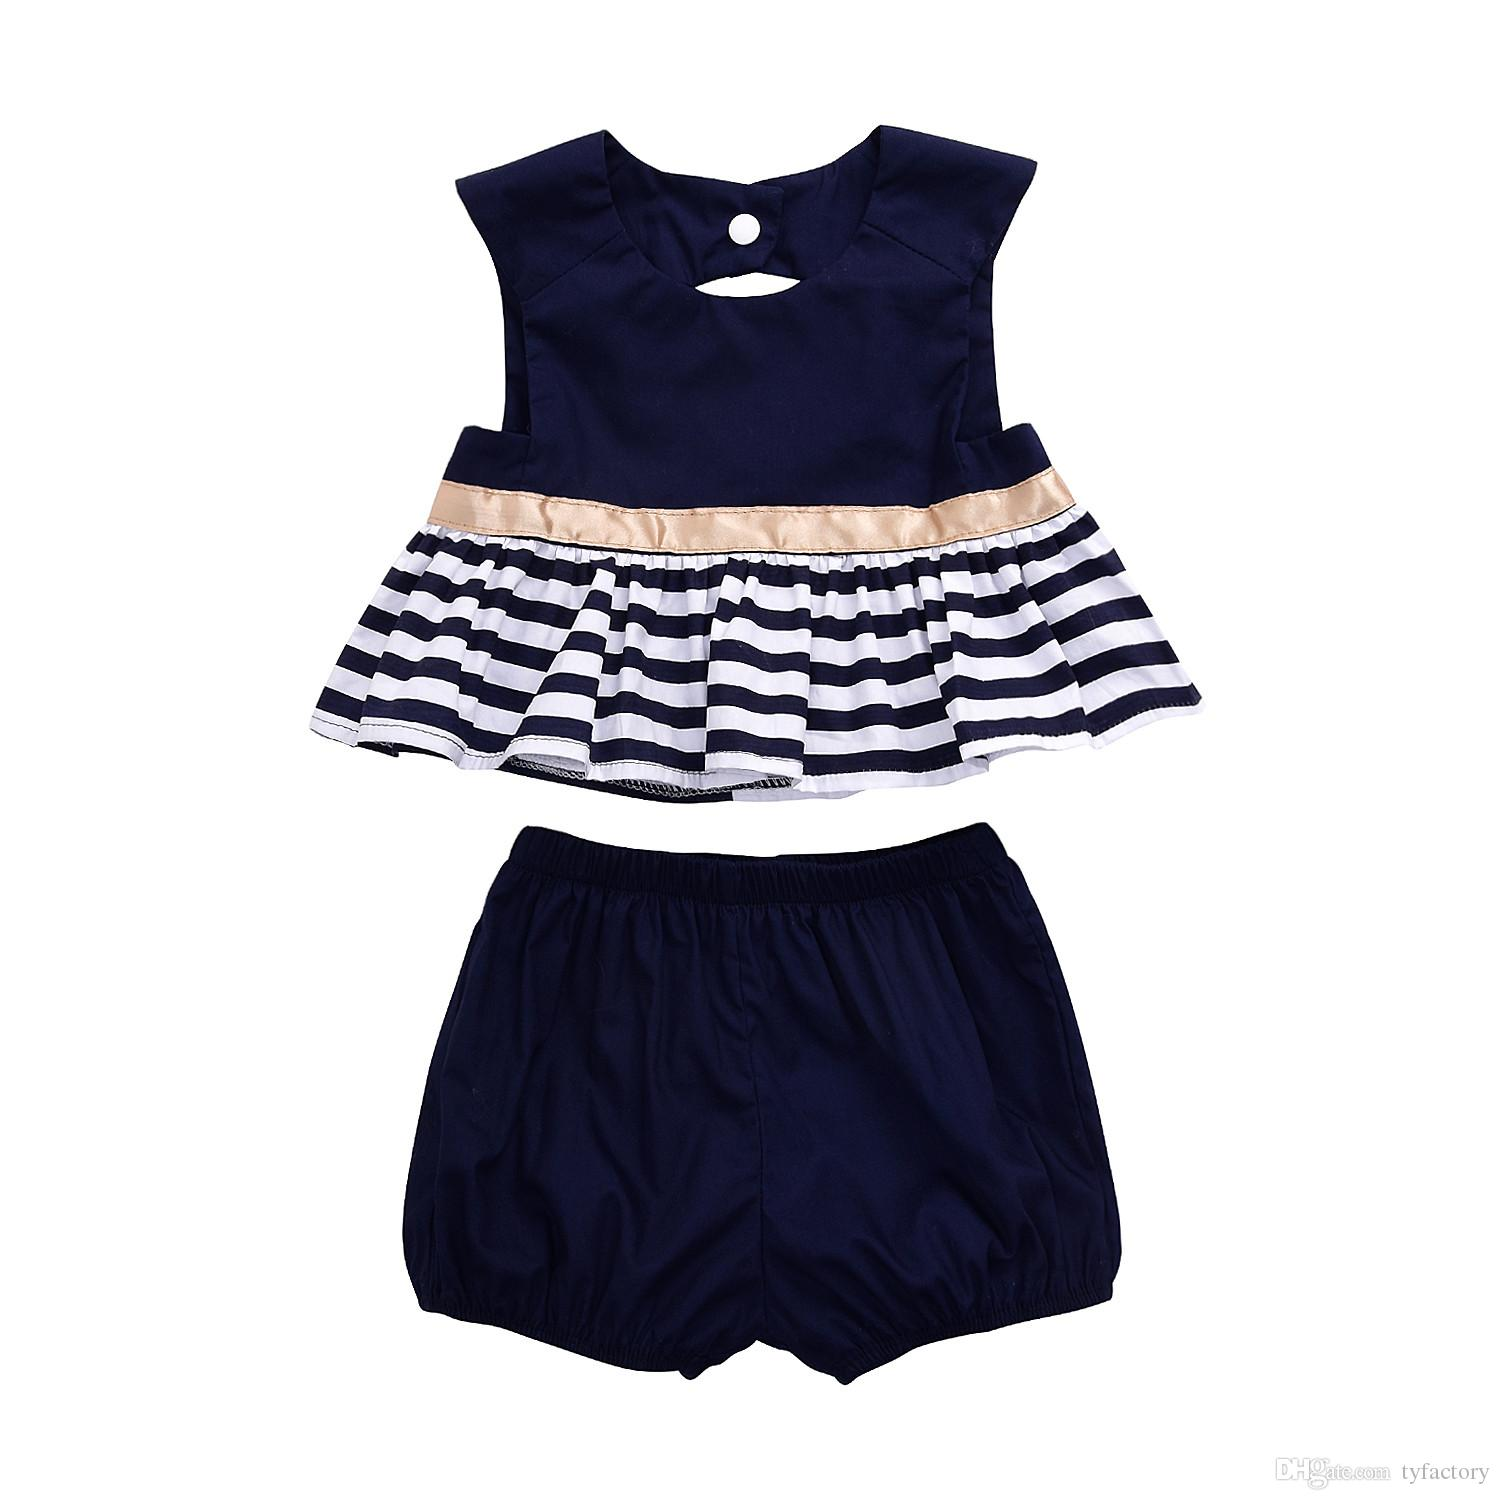 fb4ff1b25 2019 Fashion Newborn Baby Girl Clothes Navy Blue Dress Backless Top+ ...